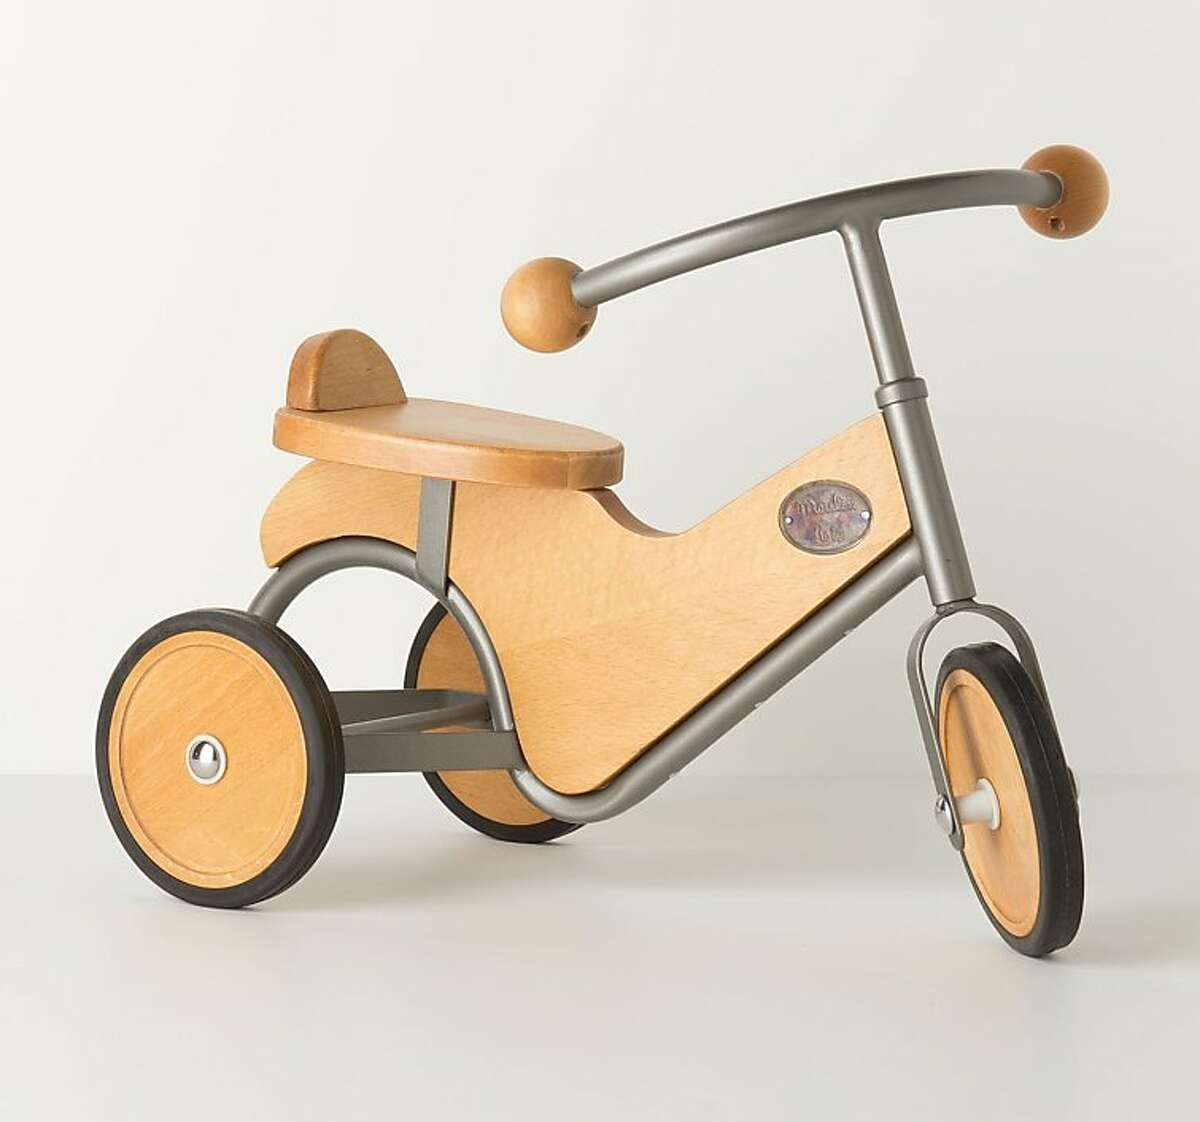 More or less: $248 Hickory-Tock Tricycle at Anthropologie (Anthropologie.com)